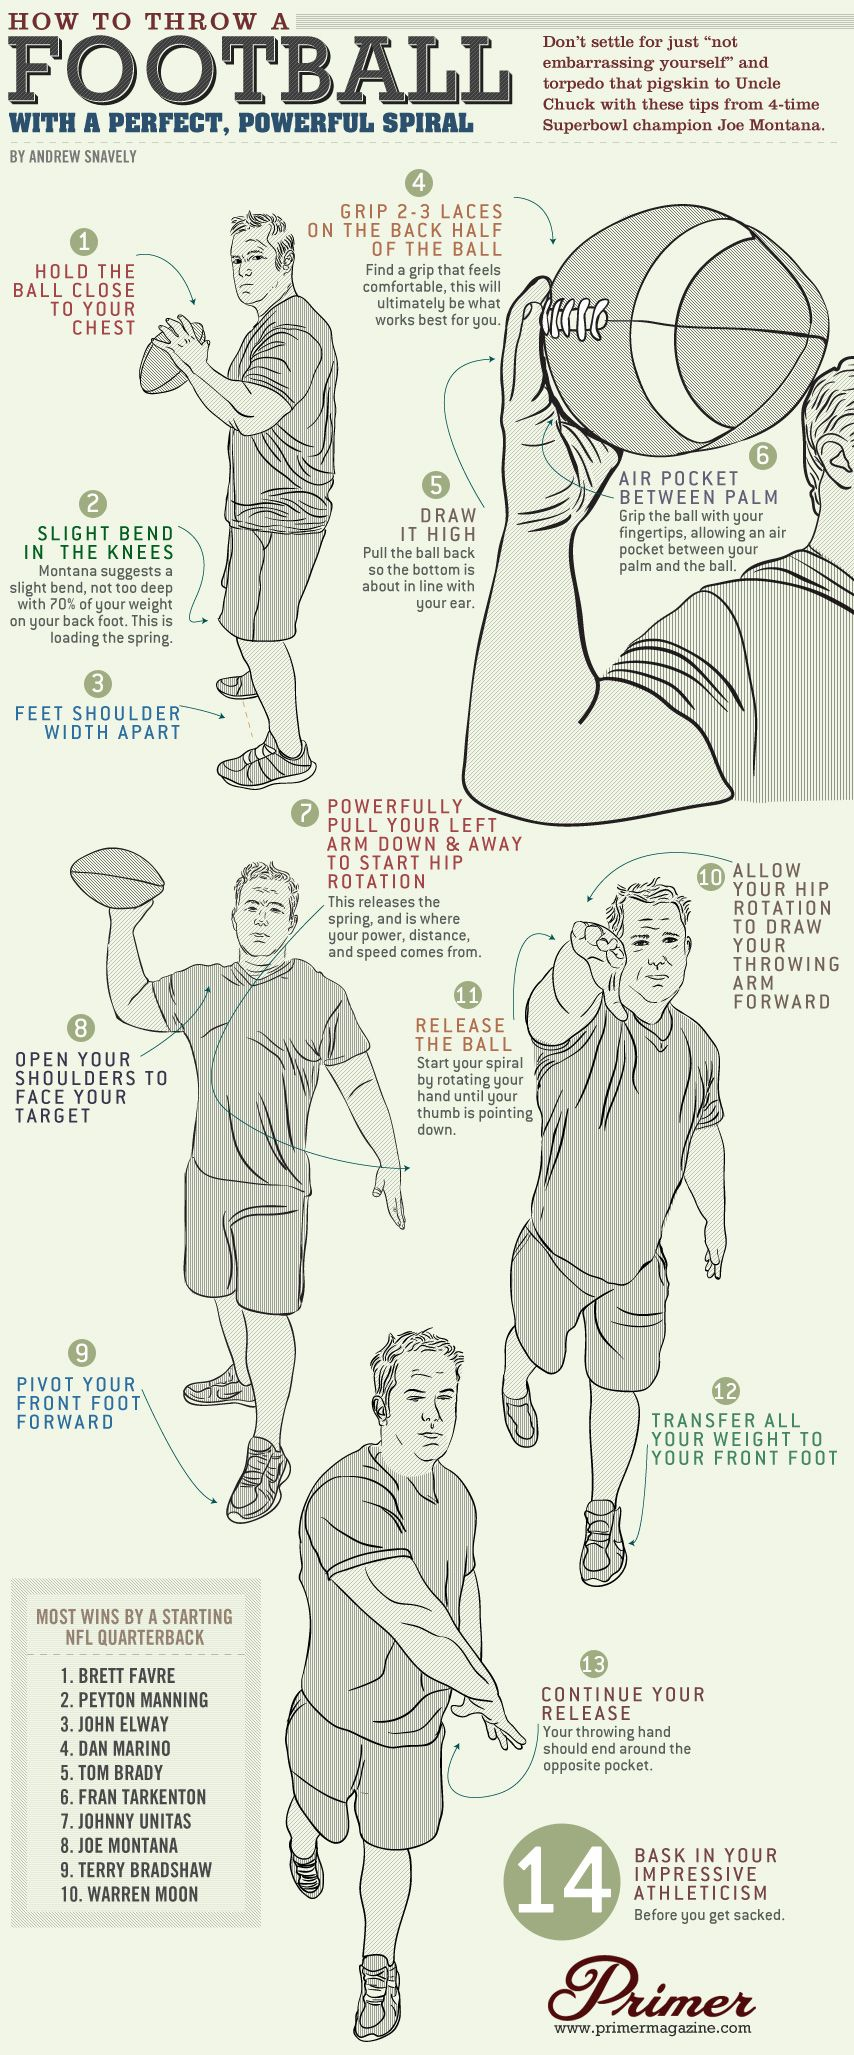 How to throw a football with a perfect powerful spiral